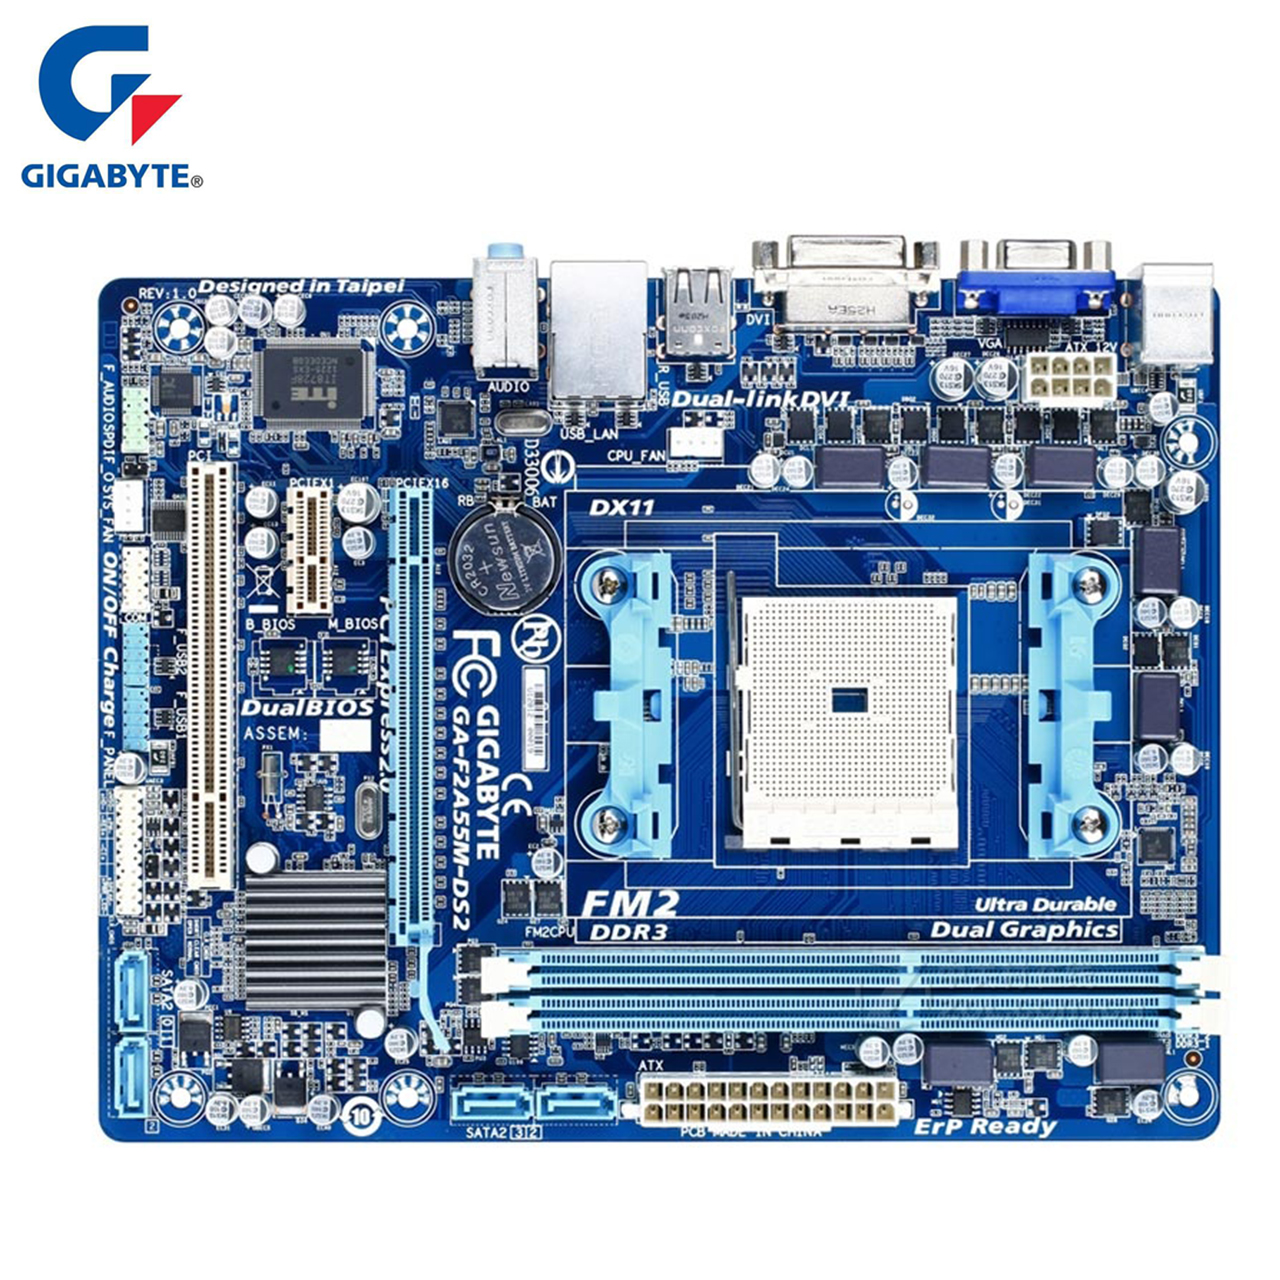 Gigabyte Motherboard GA-F2A55M-DS2 100% Original DDR3 Desktop Mainboard Boards F2A55M-DS2 Socket FM2 A55 64GB Systemboard Boards original motherboard for gigabyte ga f2a55m ds2 ddr3 socket fm2 f2a55m ds2 board a55 usb2 0 desktop motherborad free shipping